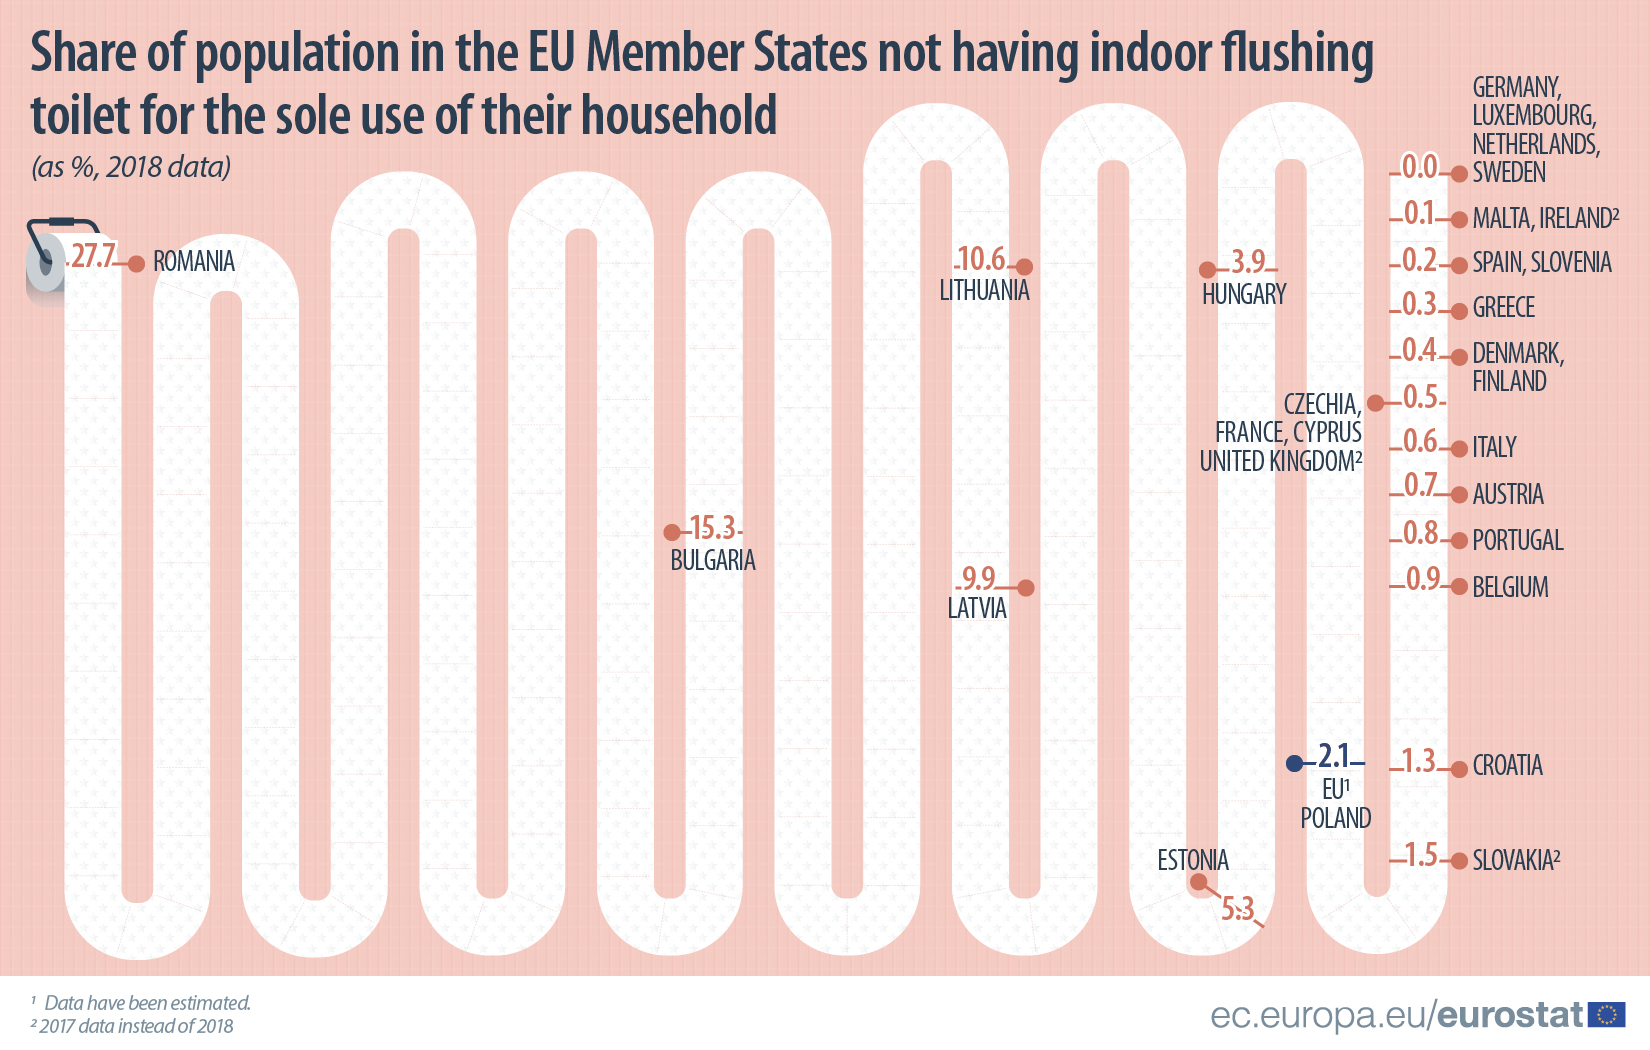 Share of population not having access to an indoor flushing toilet, 2018